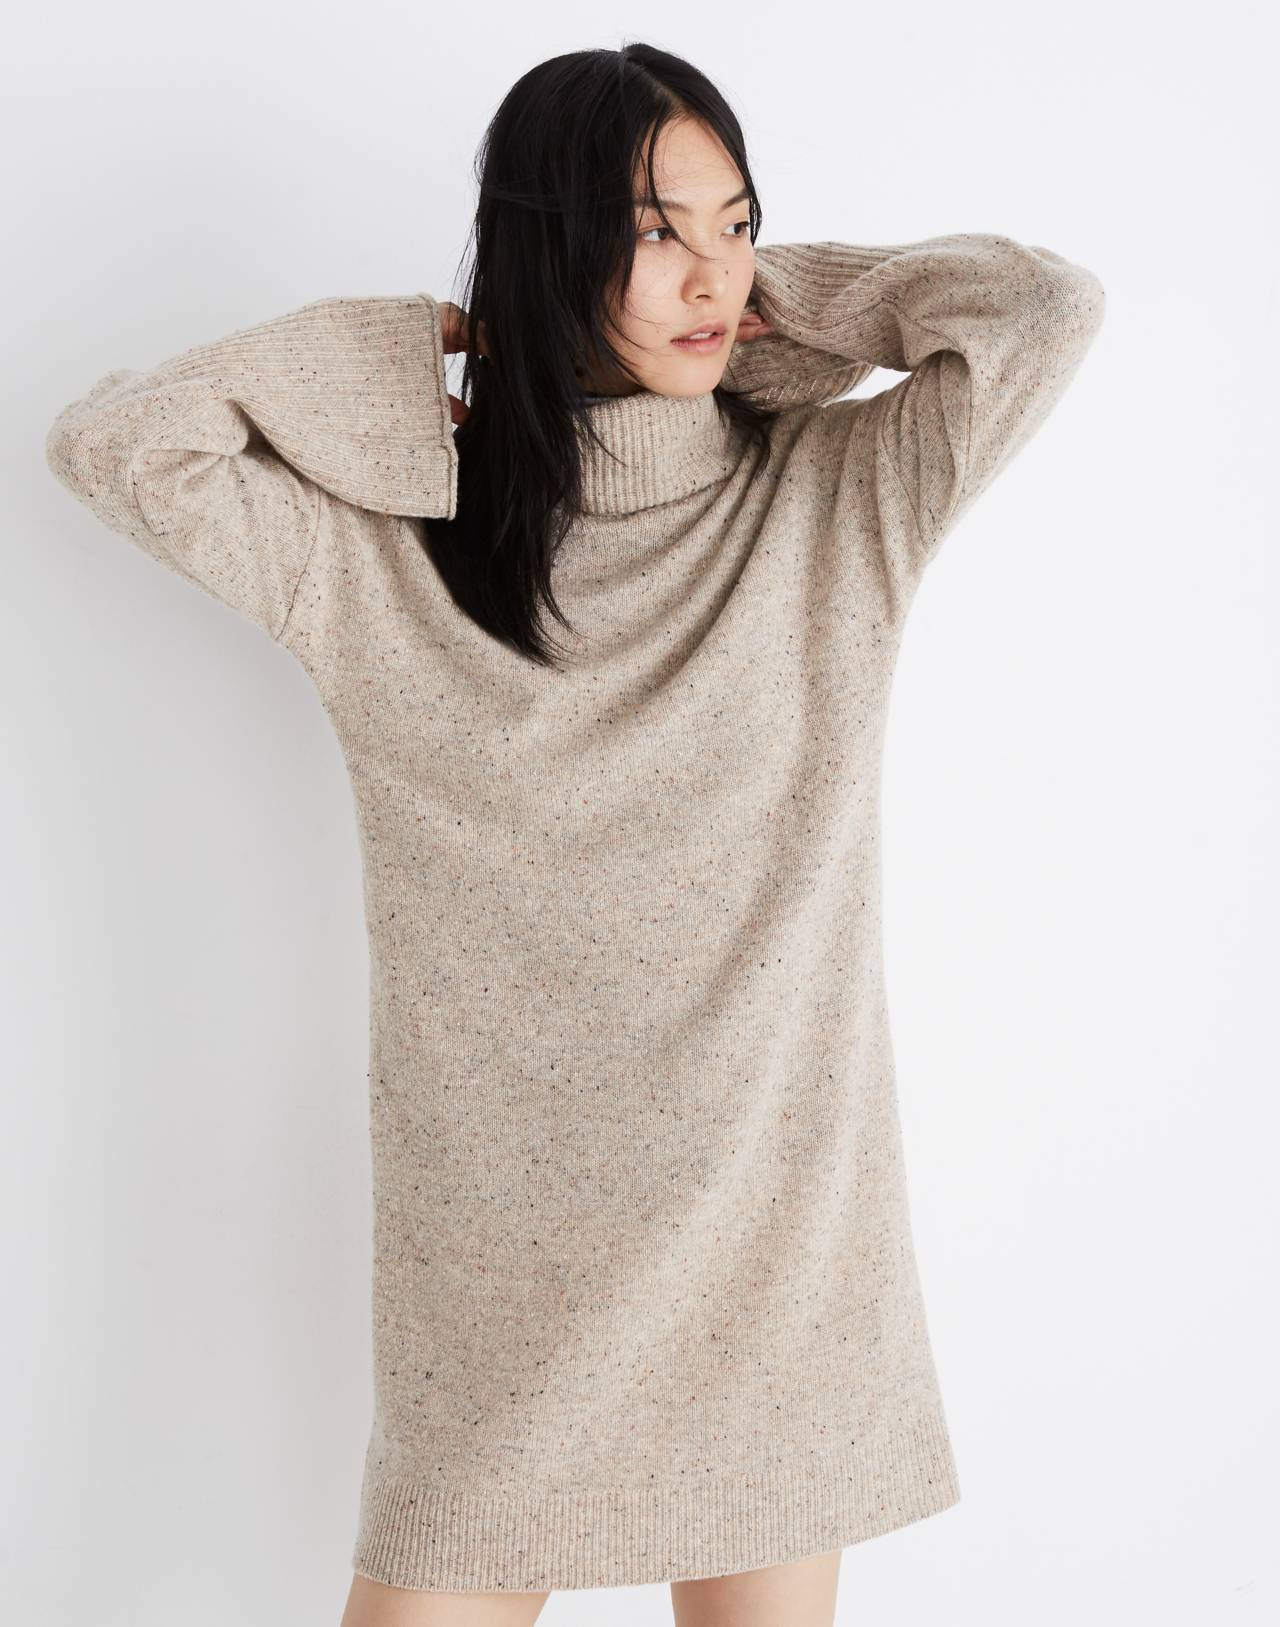 Bell-Sleeve Turtleneck Sweater-Dress in donegal ryewater image 1